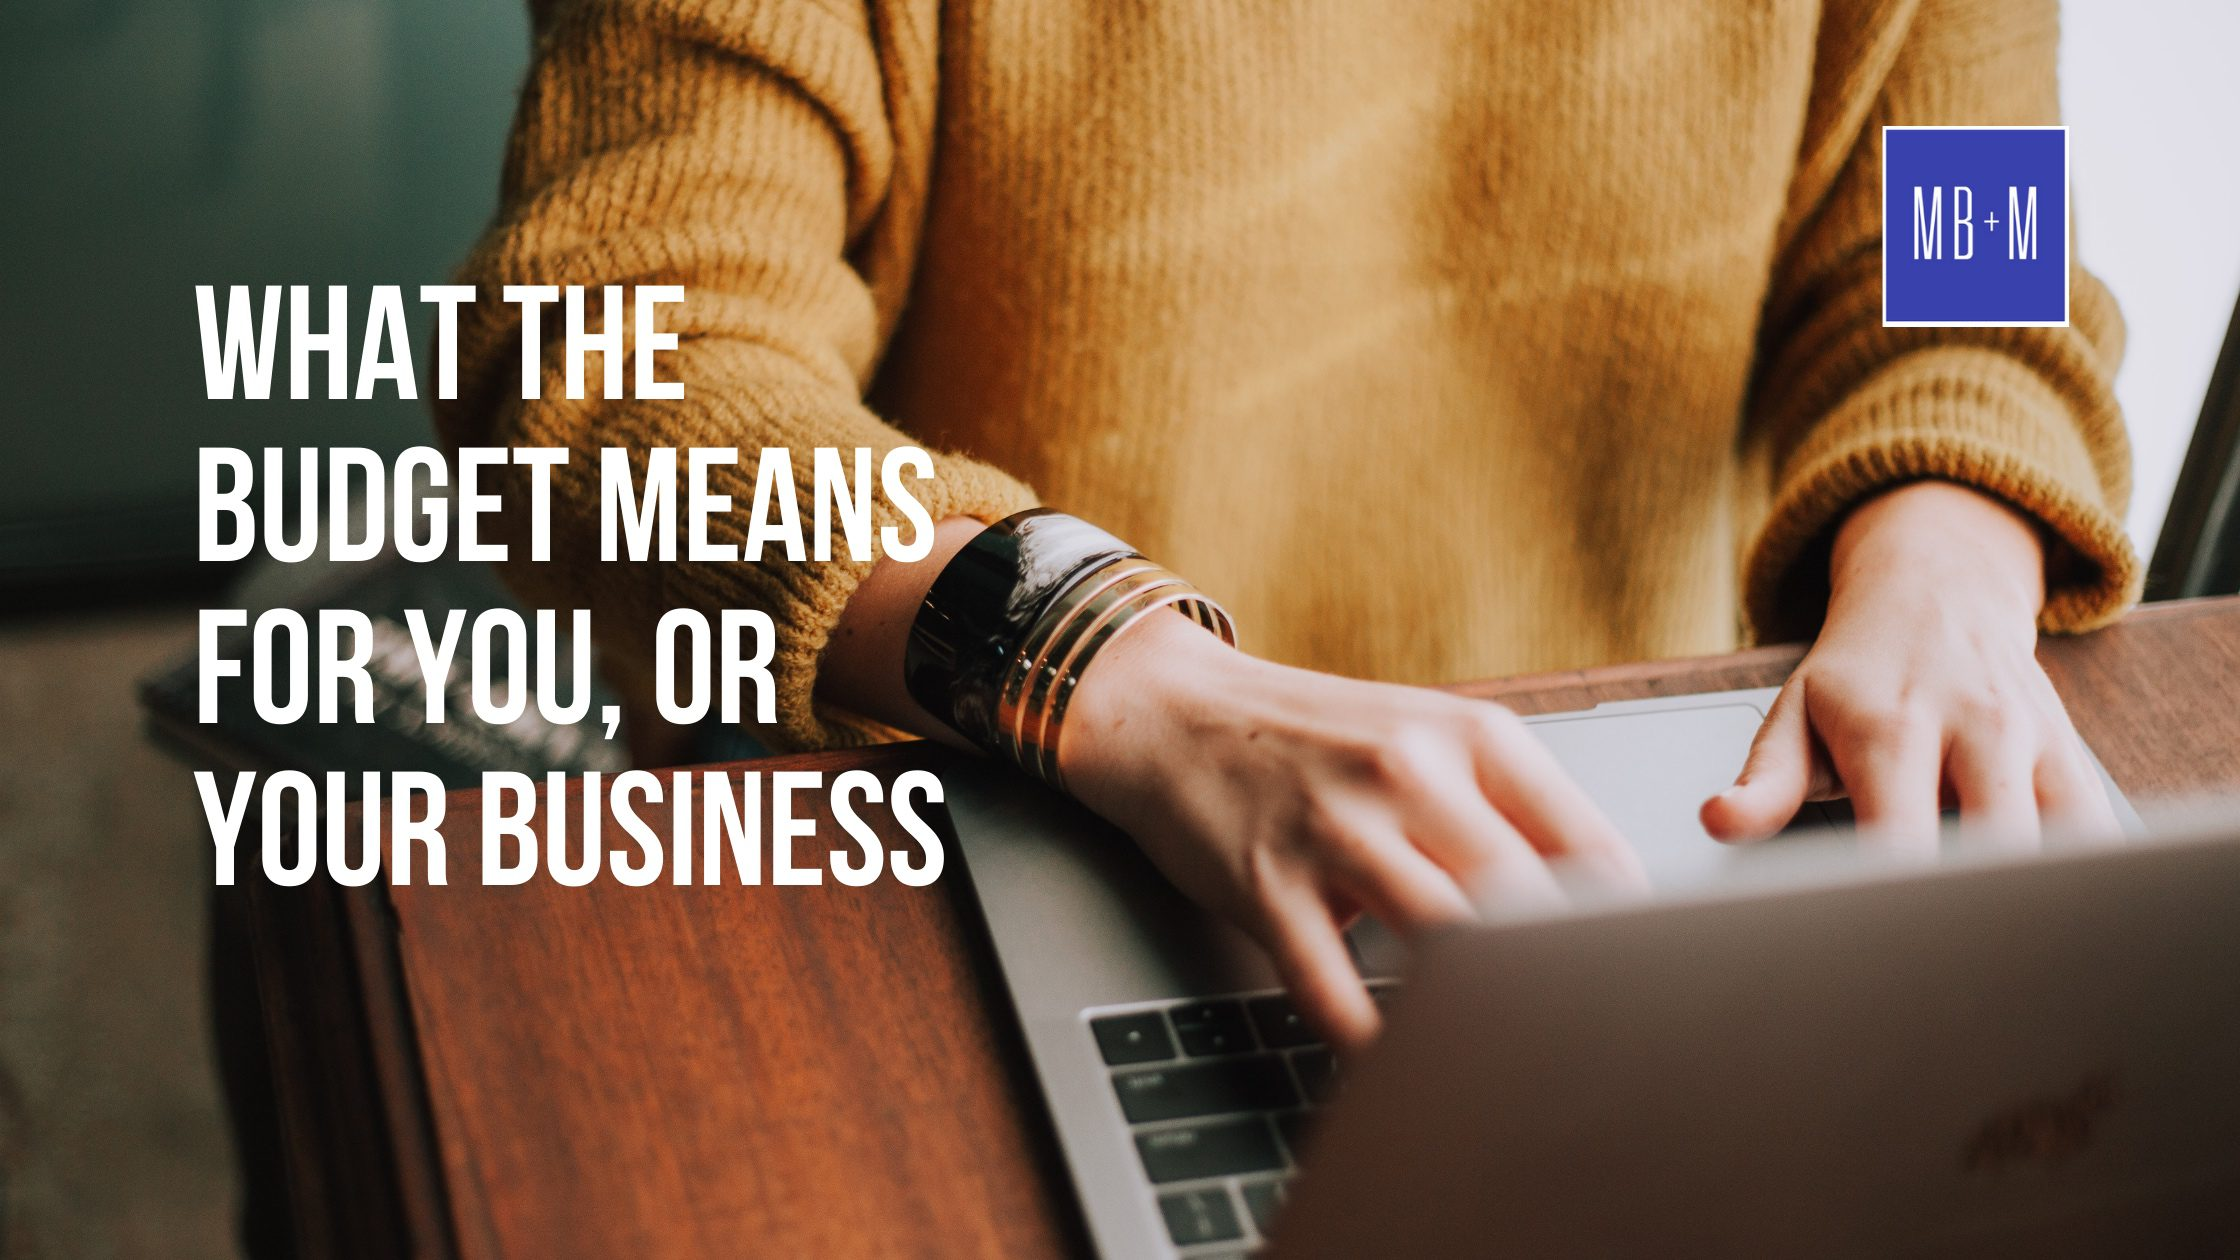 What The Budget Means for You or Your Business